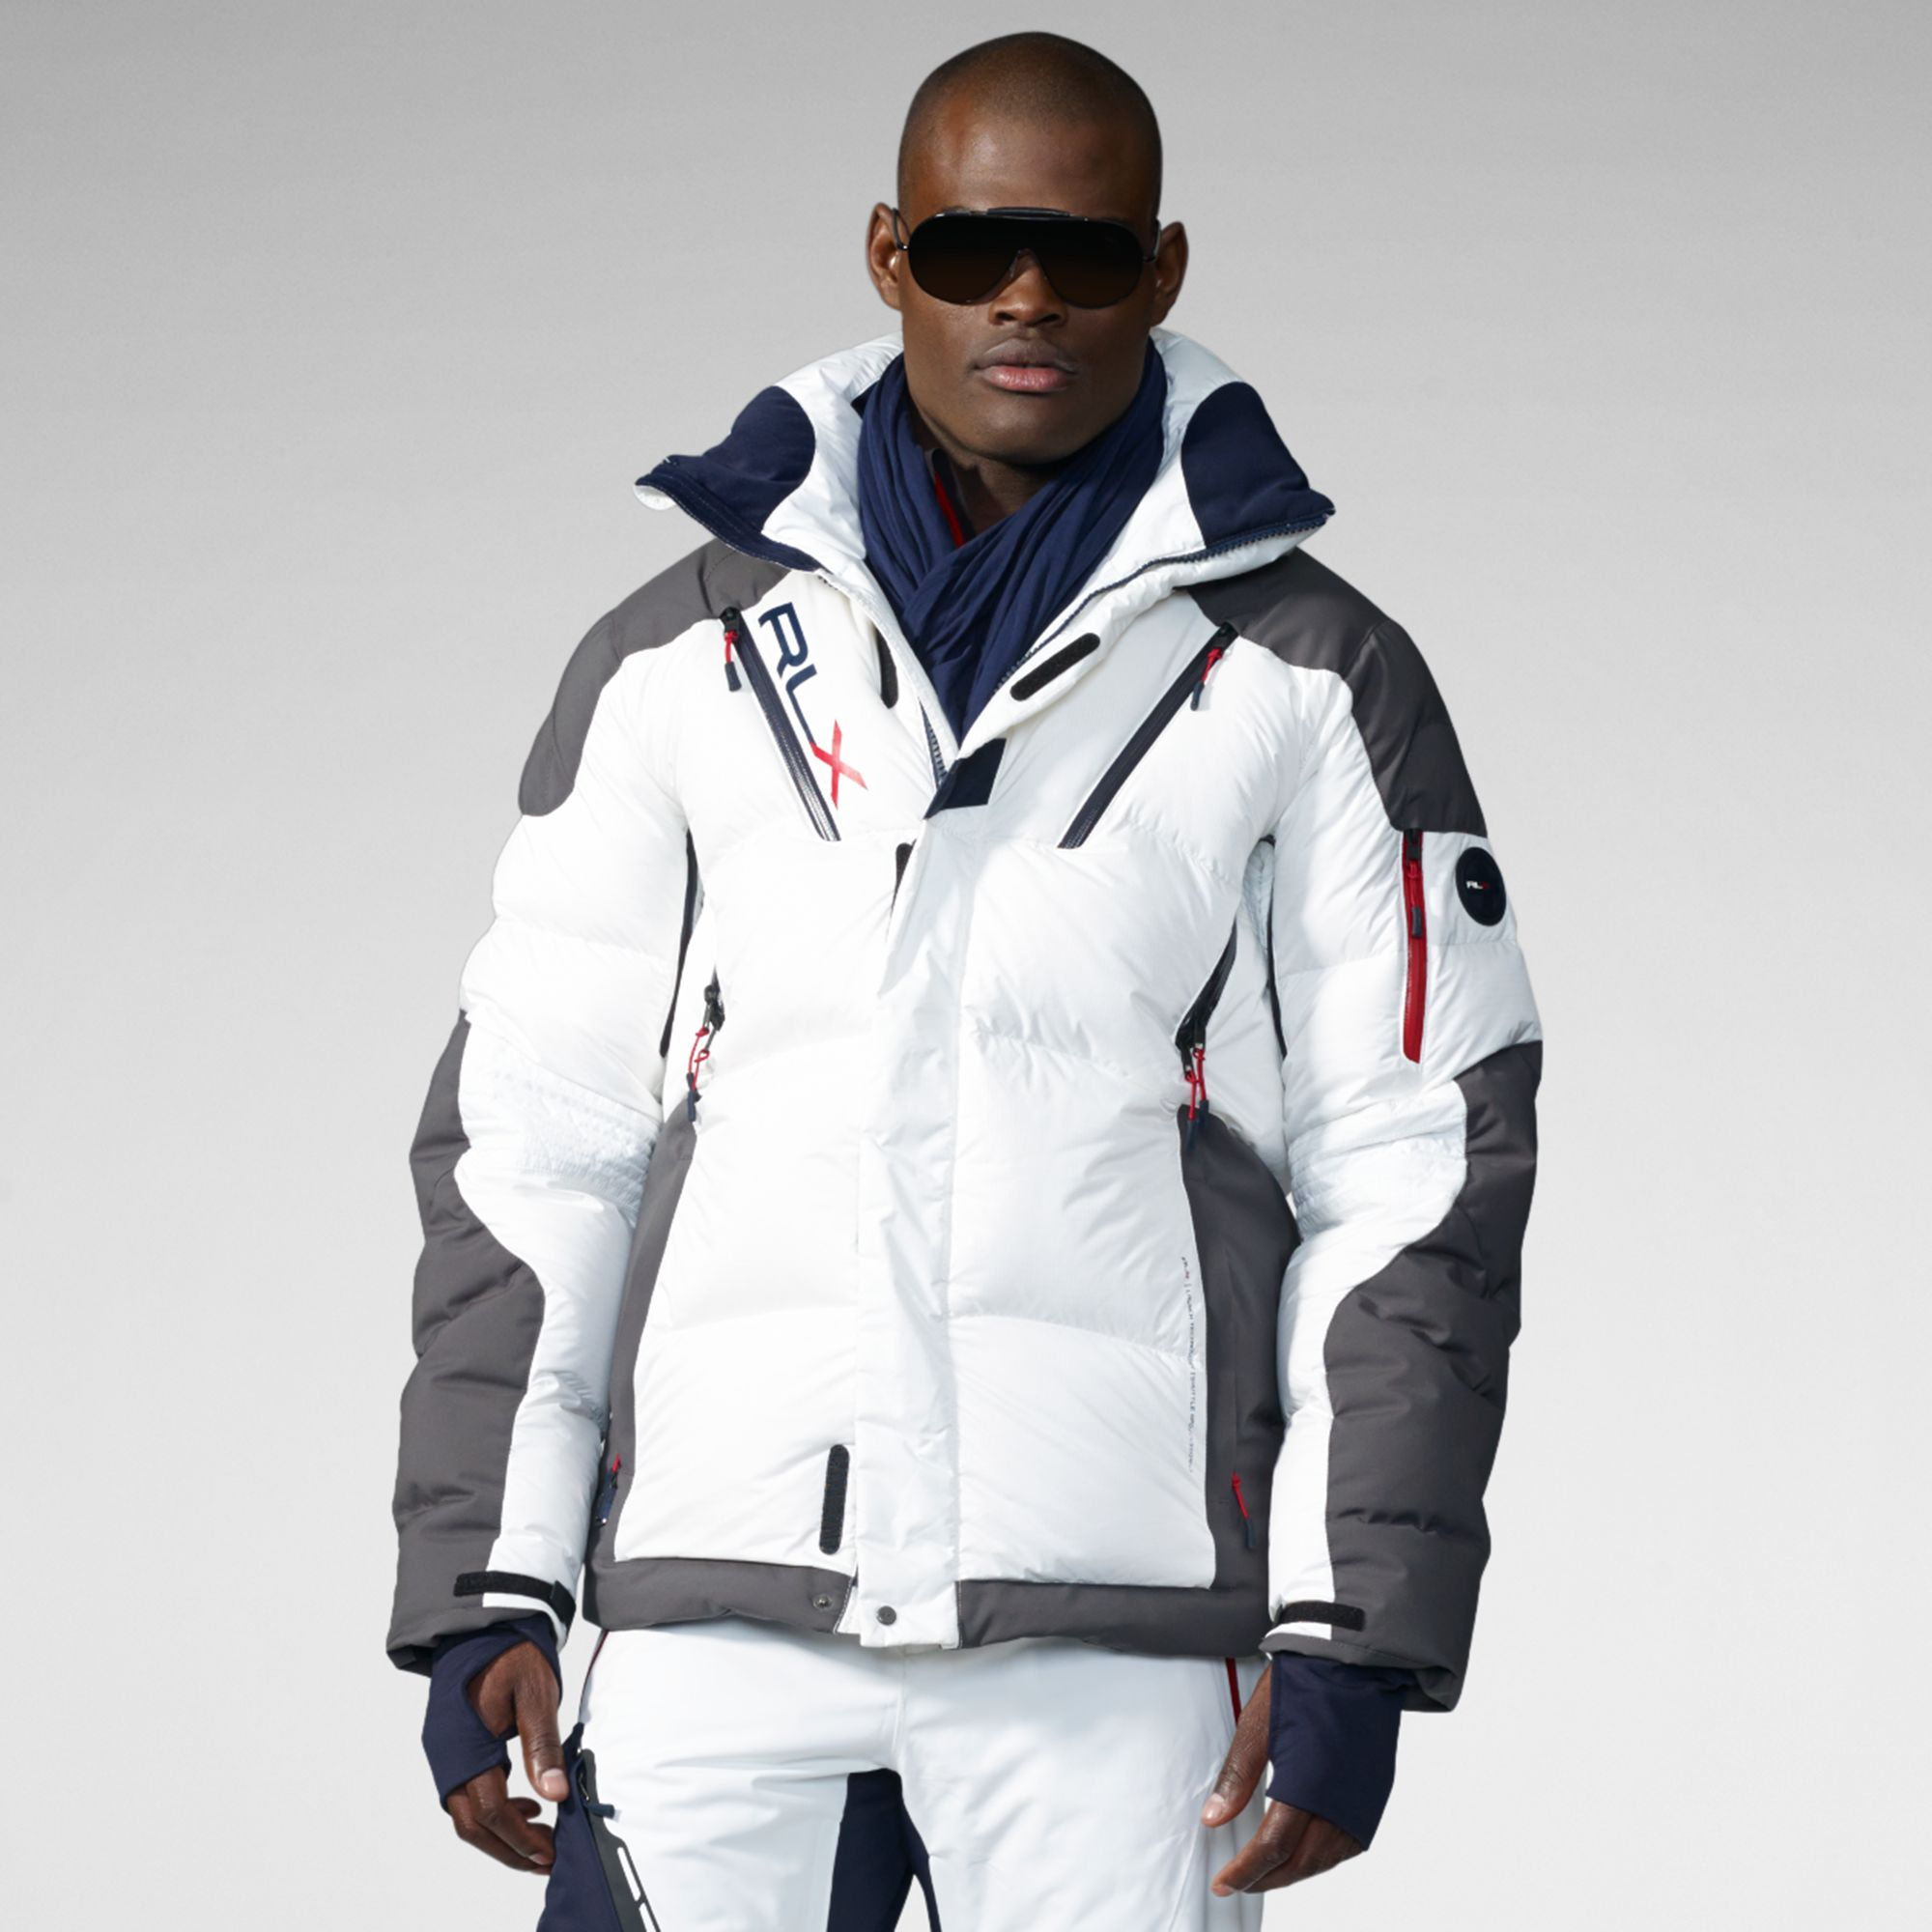 Diddy Wears A 595 Ralph Lauren Rlx Engage Down Jacket